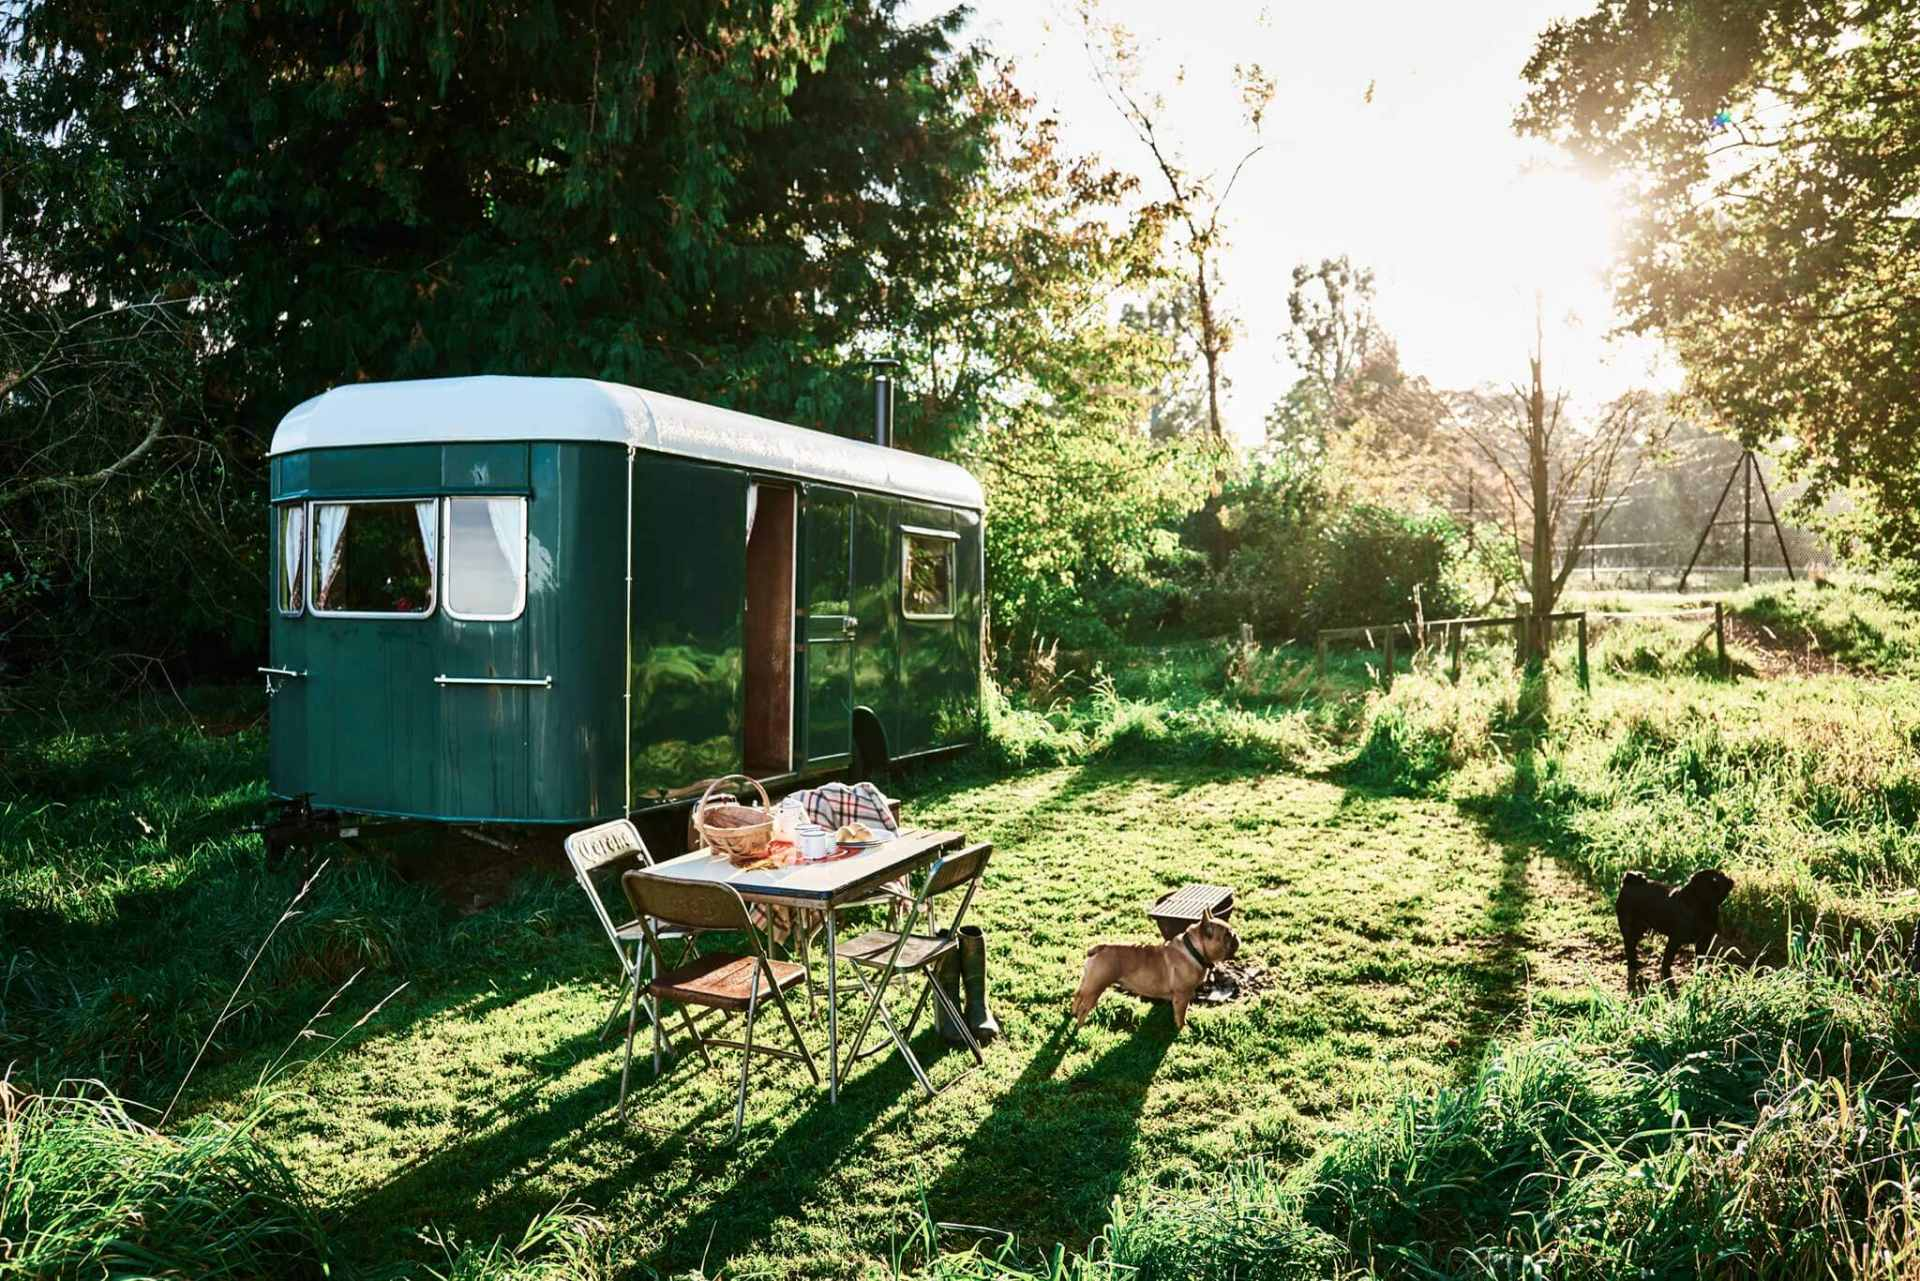 green-gertie-wagon-with-outdoor-seating-area-in-field-at-sunset-at-mad-dogs-and-vintage-vans-glamping-herefordshire